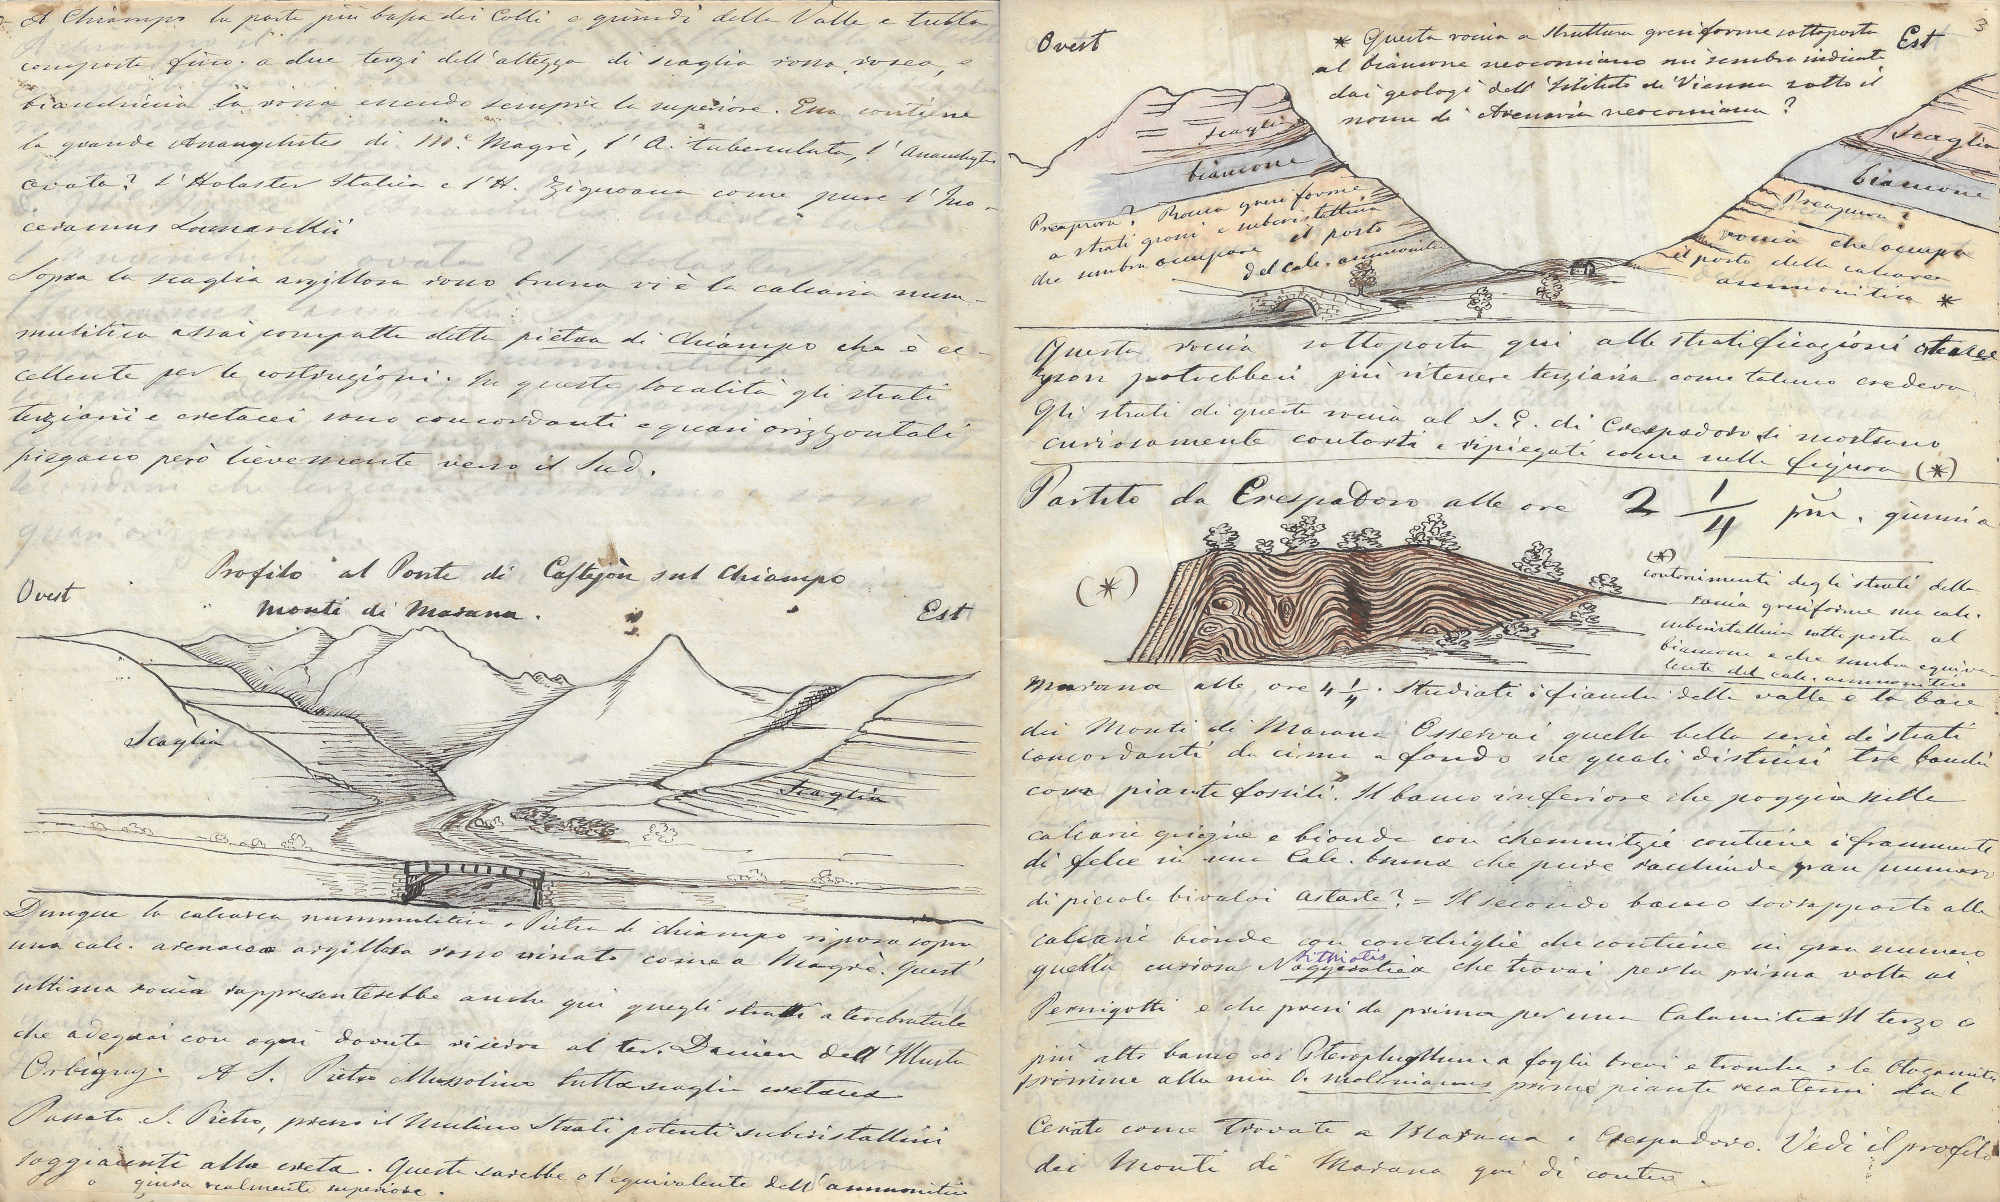 Two pages from Quaderno di campagna C